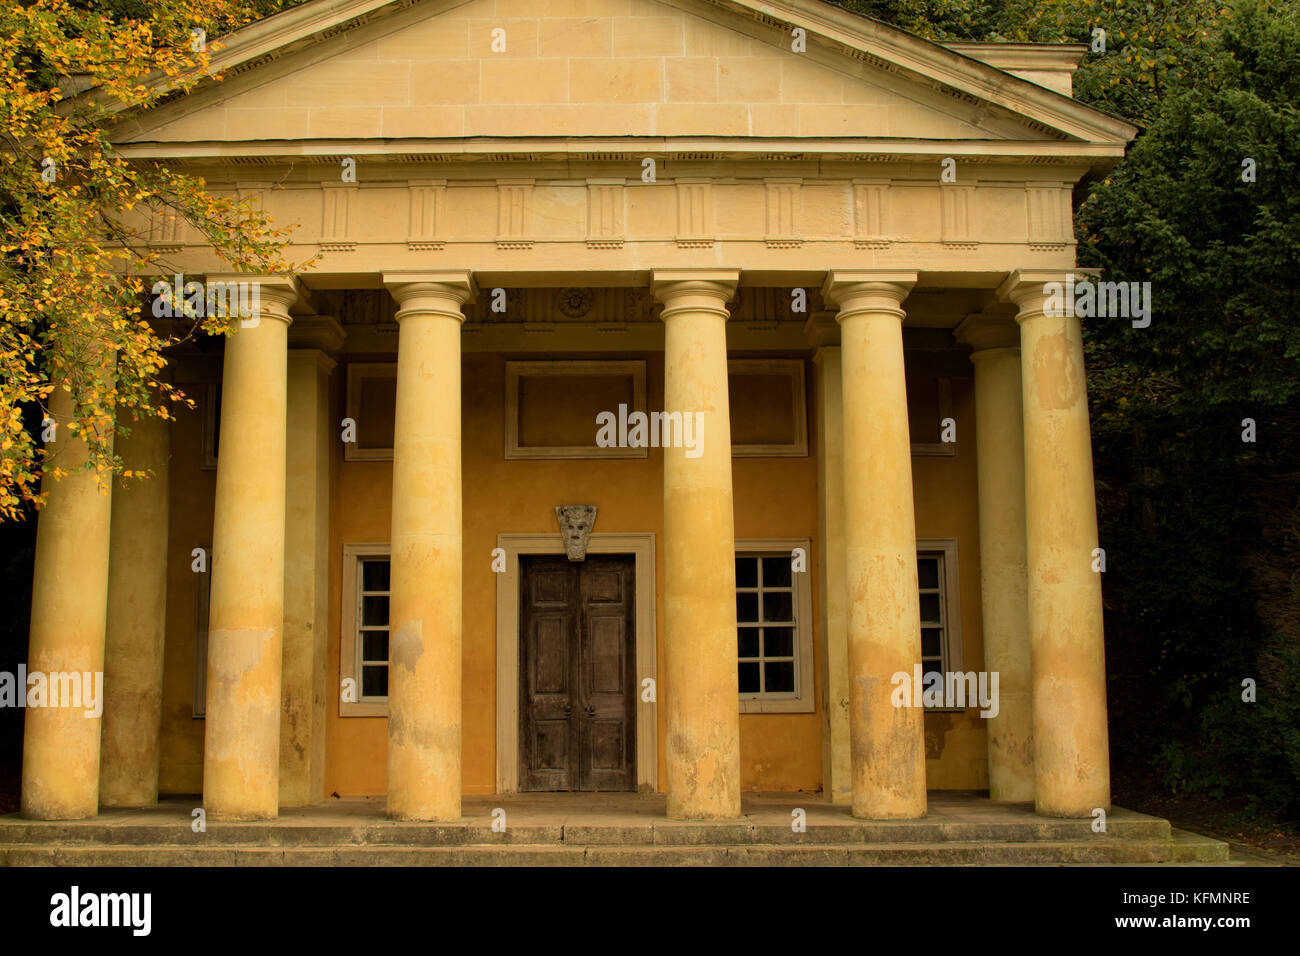 Temple of Piety at Studley Royal Water Garden,Ripon,North Yorkshire,England,UK. - Stock Image